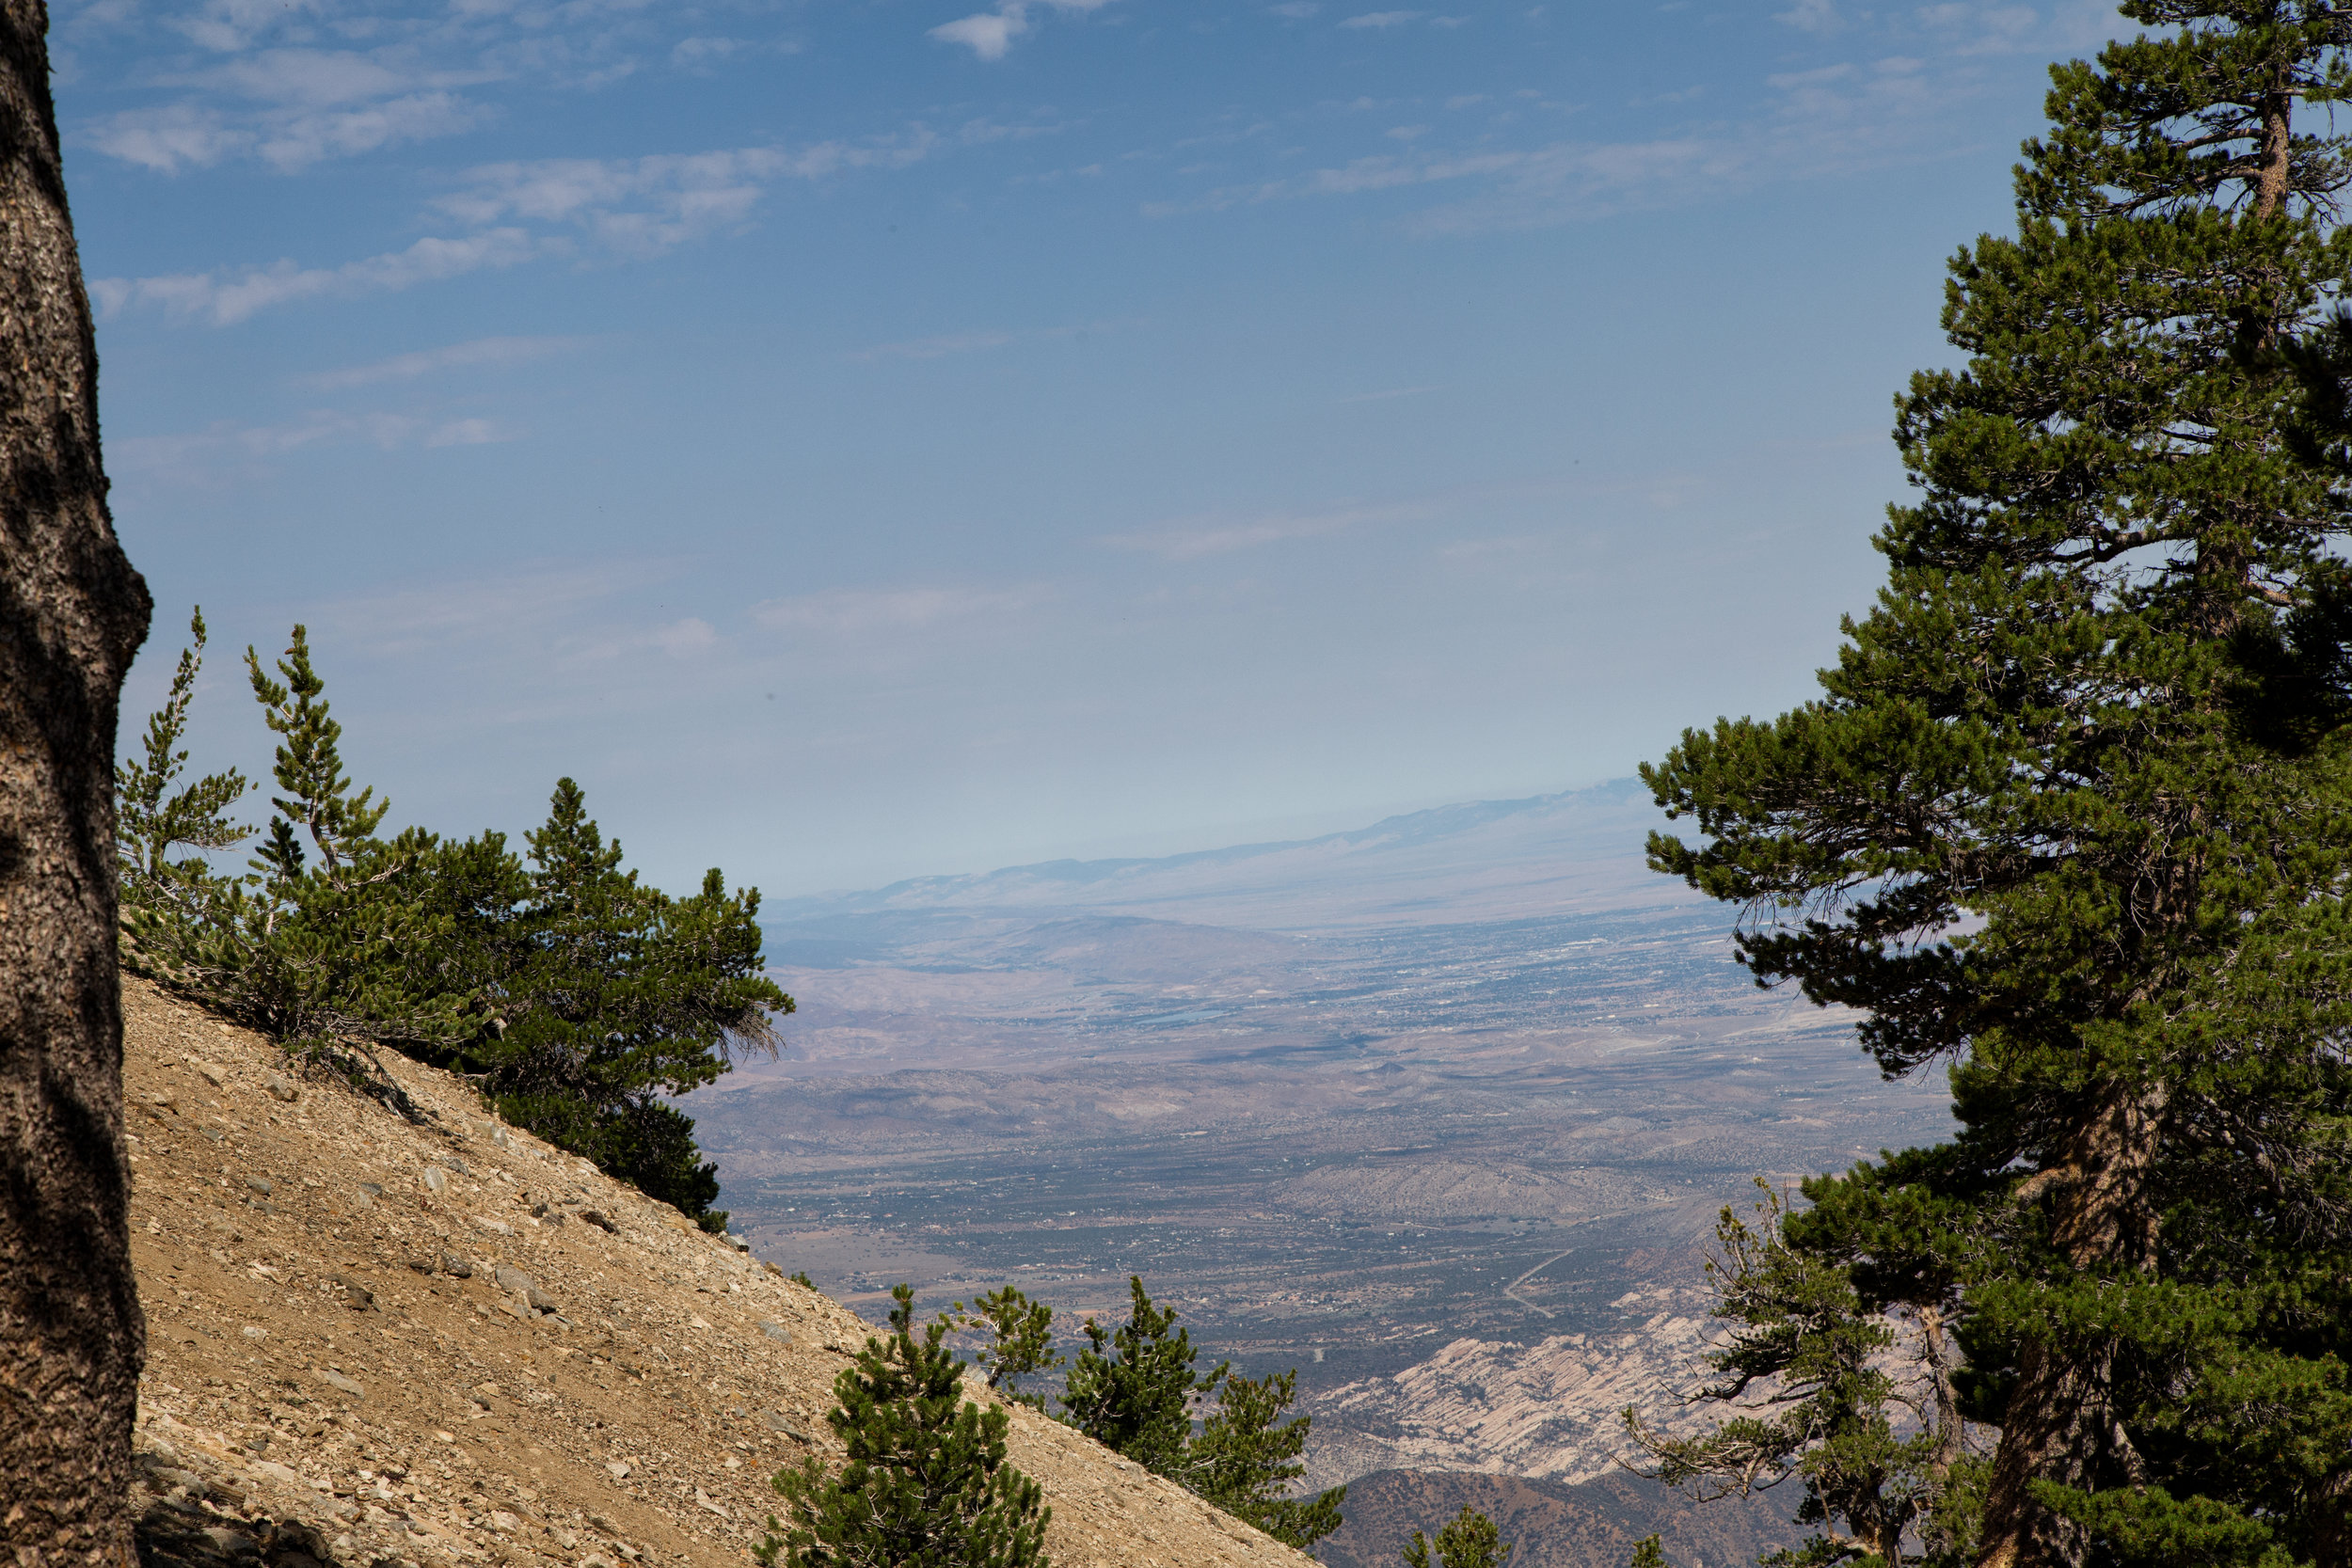 This is the view at 8,907 ft. It was a clear day and on the way up we took in spectacular views of the Mojave and the LA Basin.